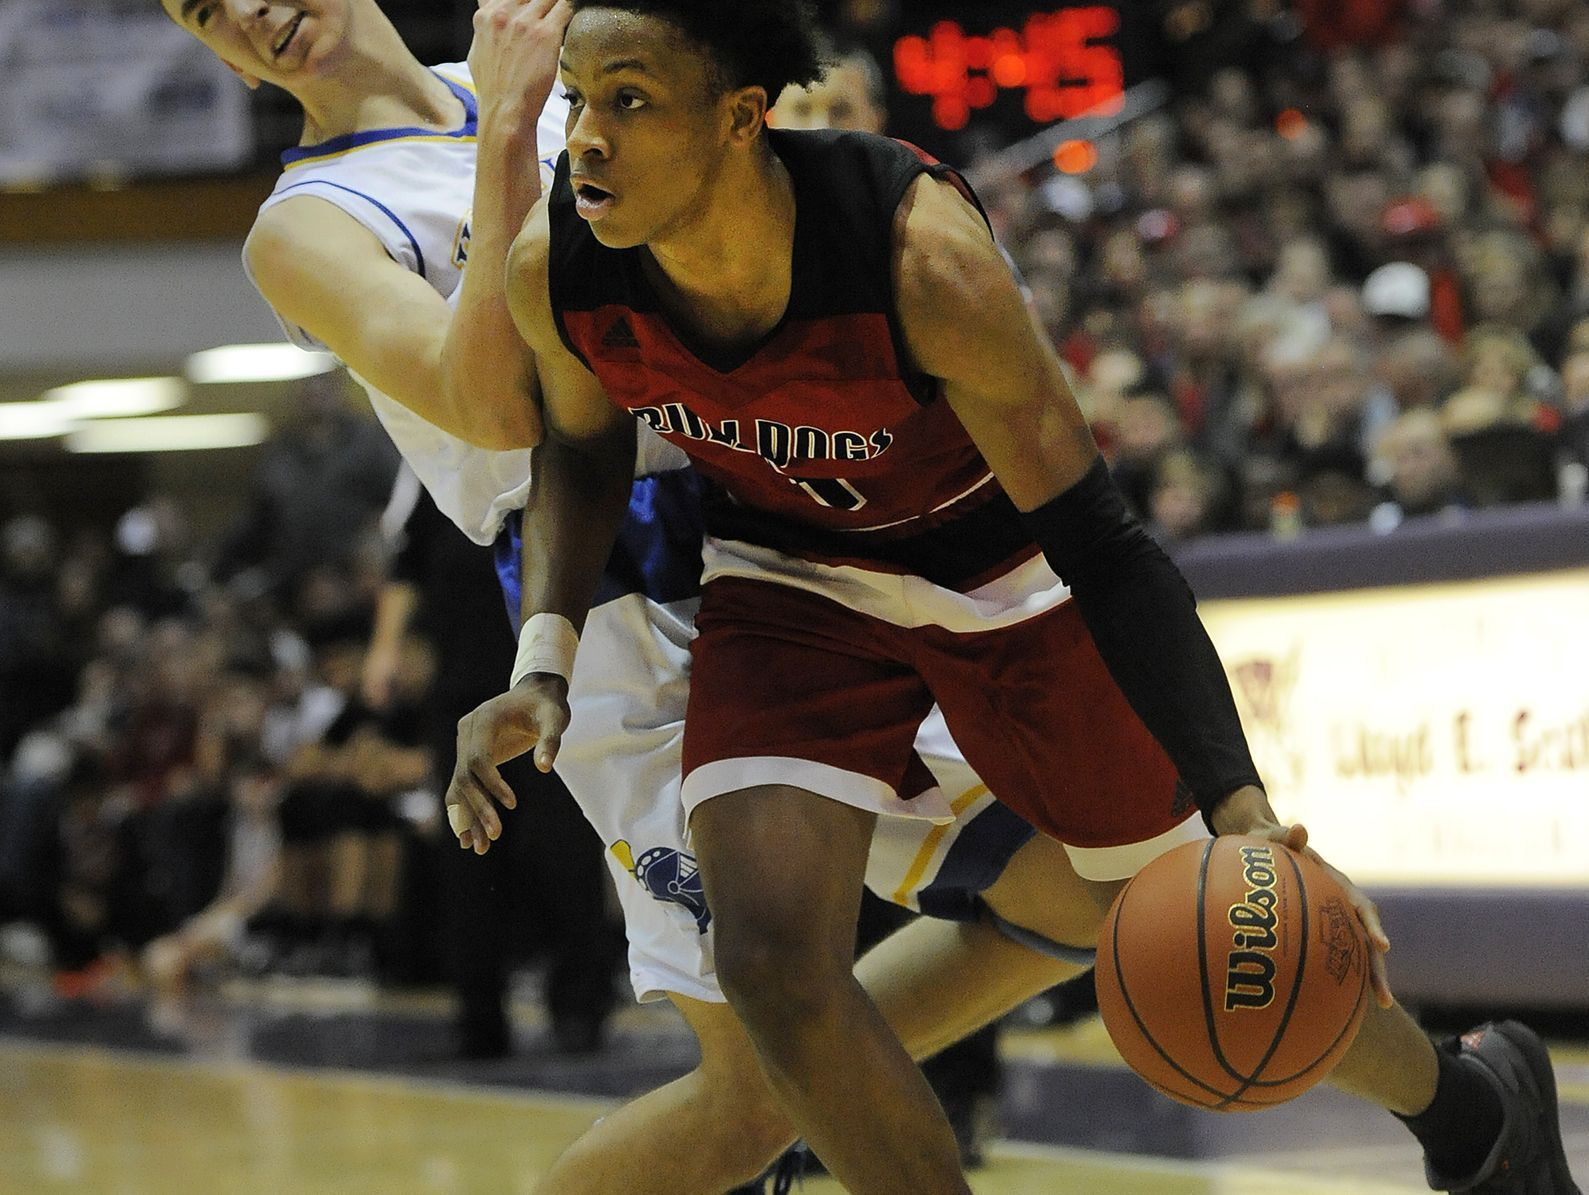 New Albany's Romeo Langford (right) drives around against Castle's Alex Hemenway (left) on Saturday in the 2017 IHSAA 4A Regional Basketball Final at Seymour High School. Castle won 72-64. (Photo by David Lee Hartlage, Special to The Courier-Journal) Mar. 11, 2017